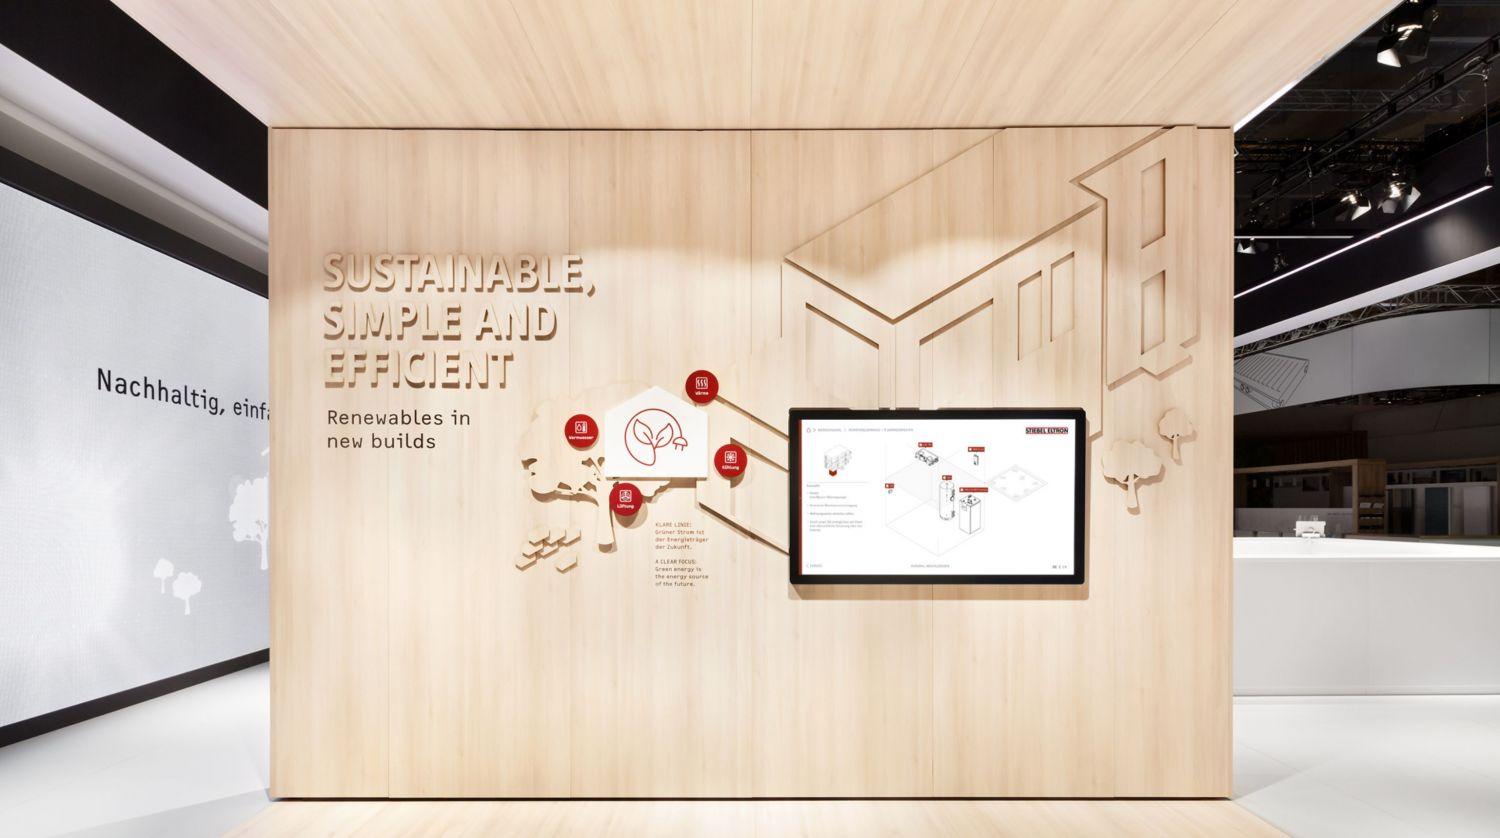 Stiebel Eltron - ISH 2019 - Multitouch - Large Format Display - Multimedia - Produkt Konfigurator - Interactive Experience - realtime visions